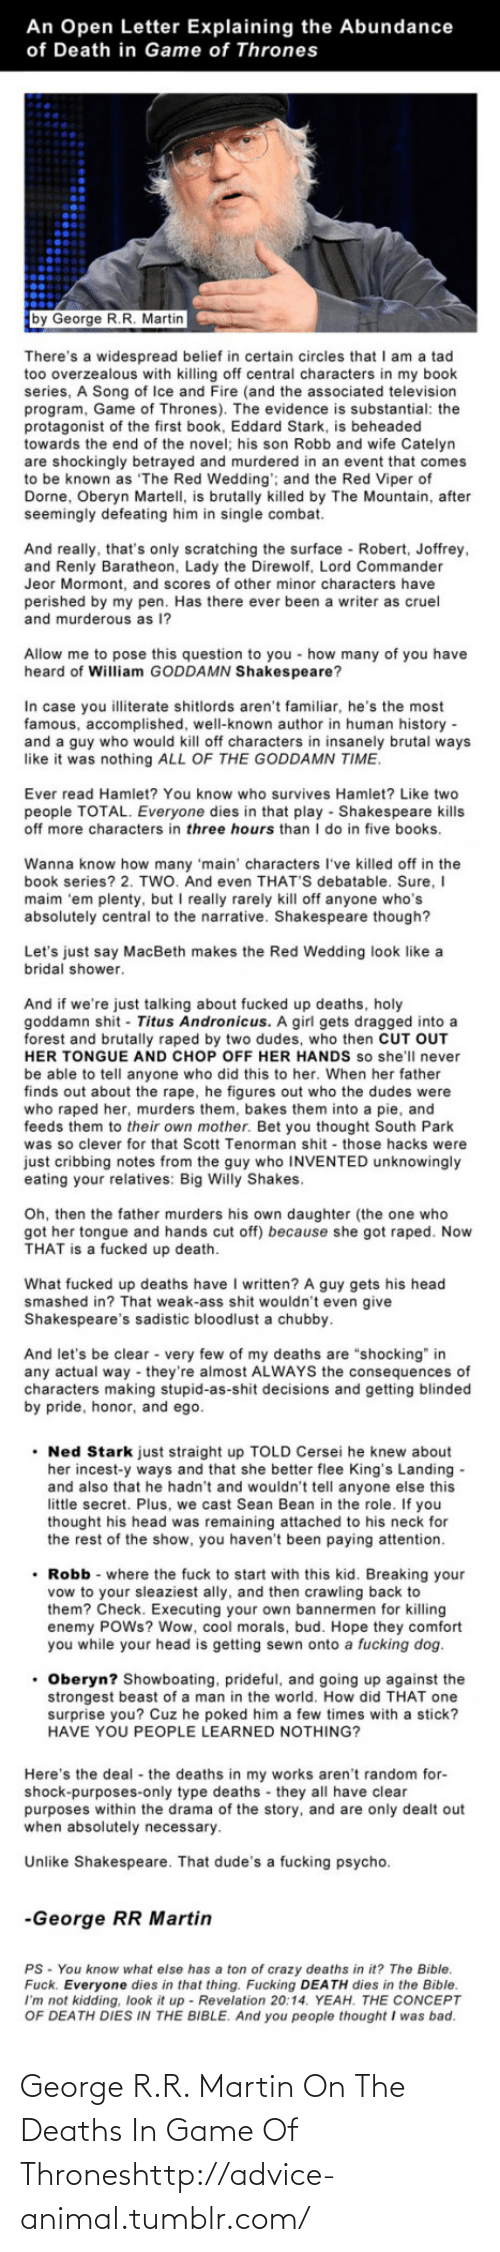 Game of Thrones: George R.R. Martin On The Deaths In Game Of Throneshttp://advice-animal.tumblr.com/